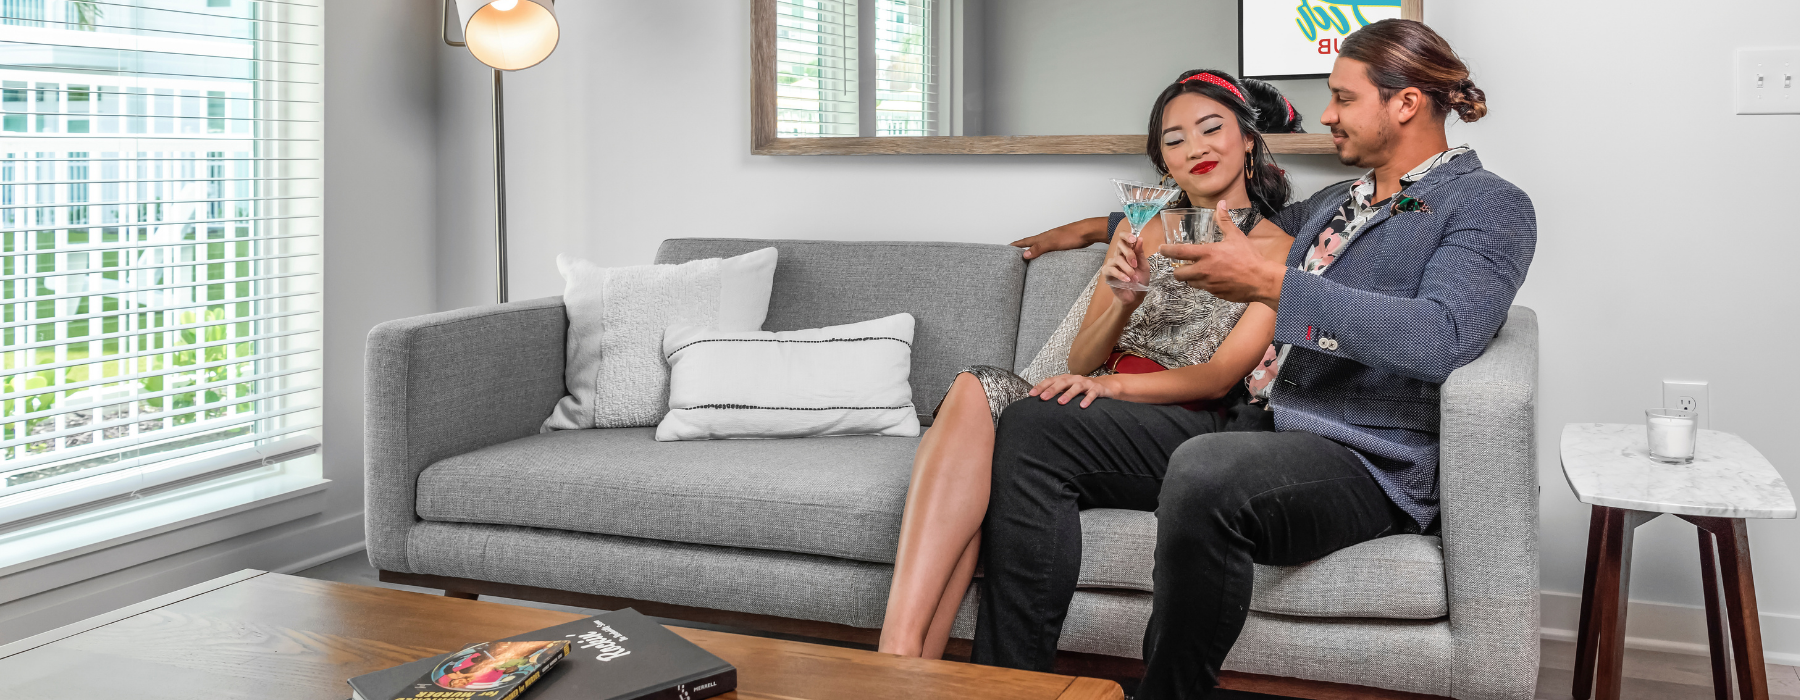 couple in vintage clothes lounging on couch